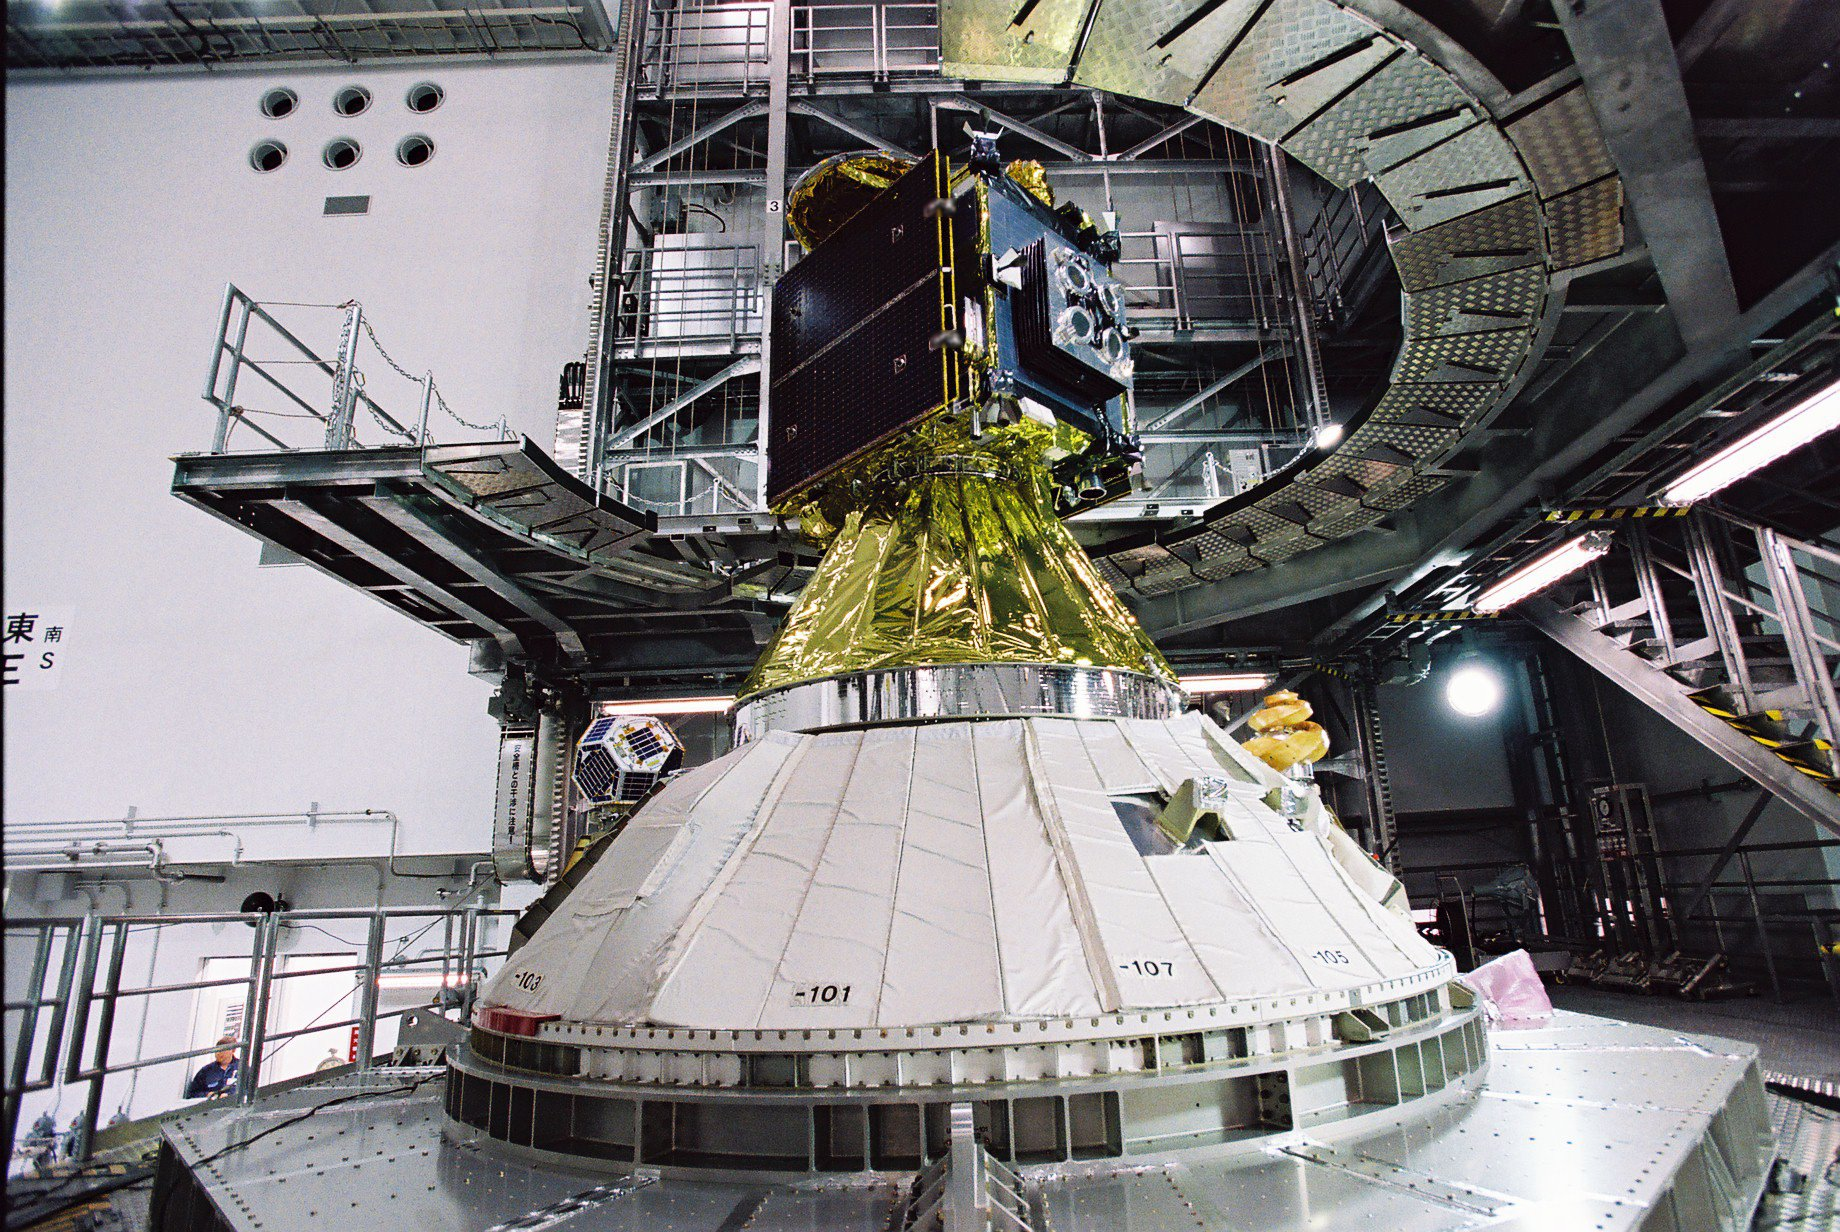 Hayabusa2 space probe (top), Shin-en2 (on the left) and ARTSAT2:DESPATCH (on the right)